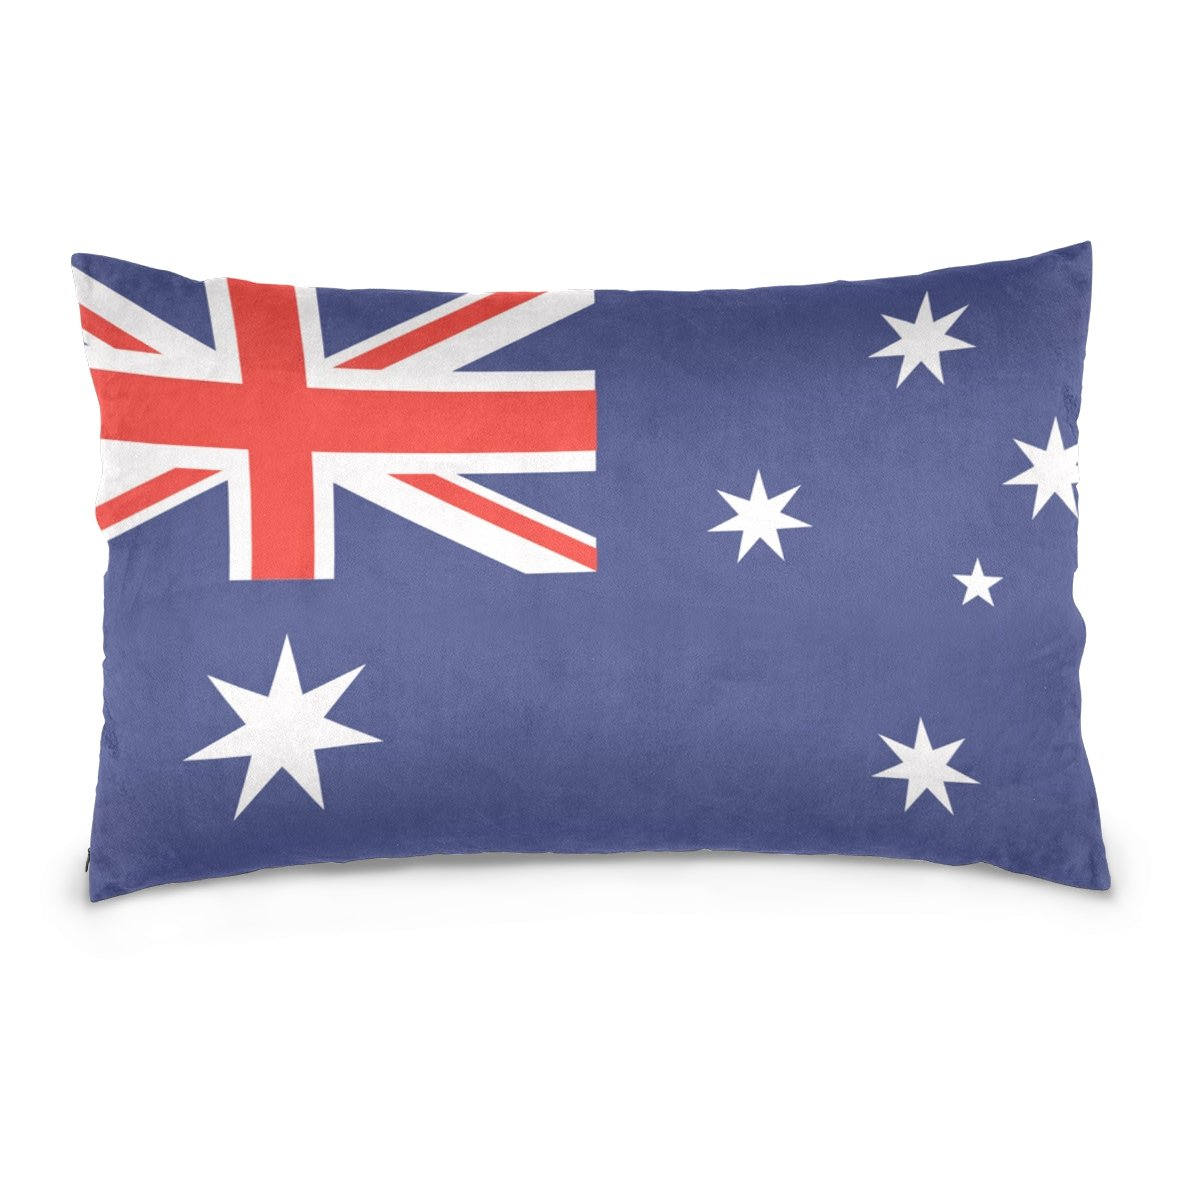 Top Carpenter Australia Flag Velvet Oblong Lumbar Plush Throw Pillow Cover/Shams Cushion Case - 20x36in - Decorative Invisible Zipper Design for Couch Sofa Pillowcase Only